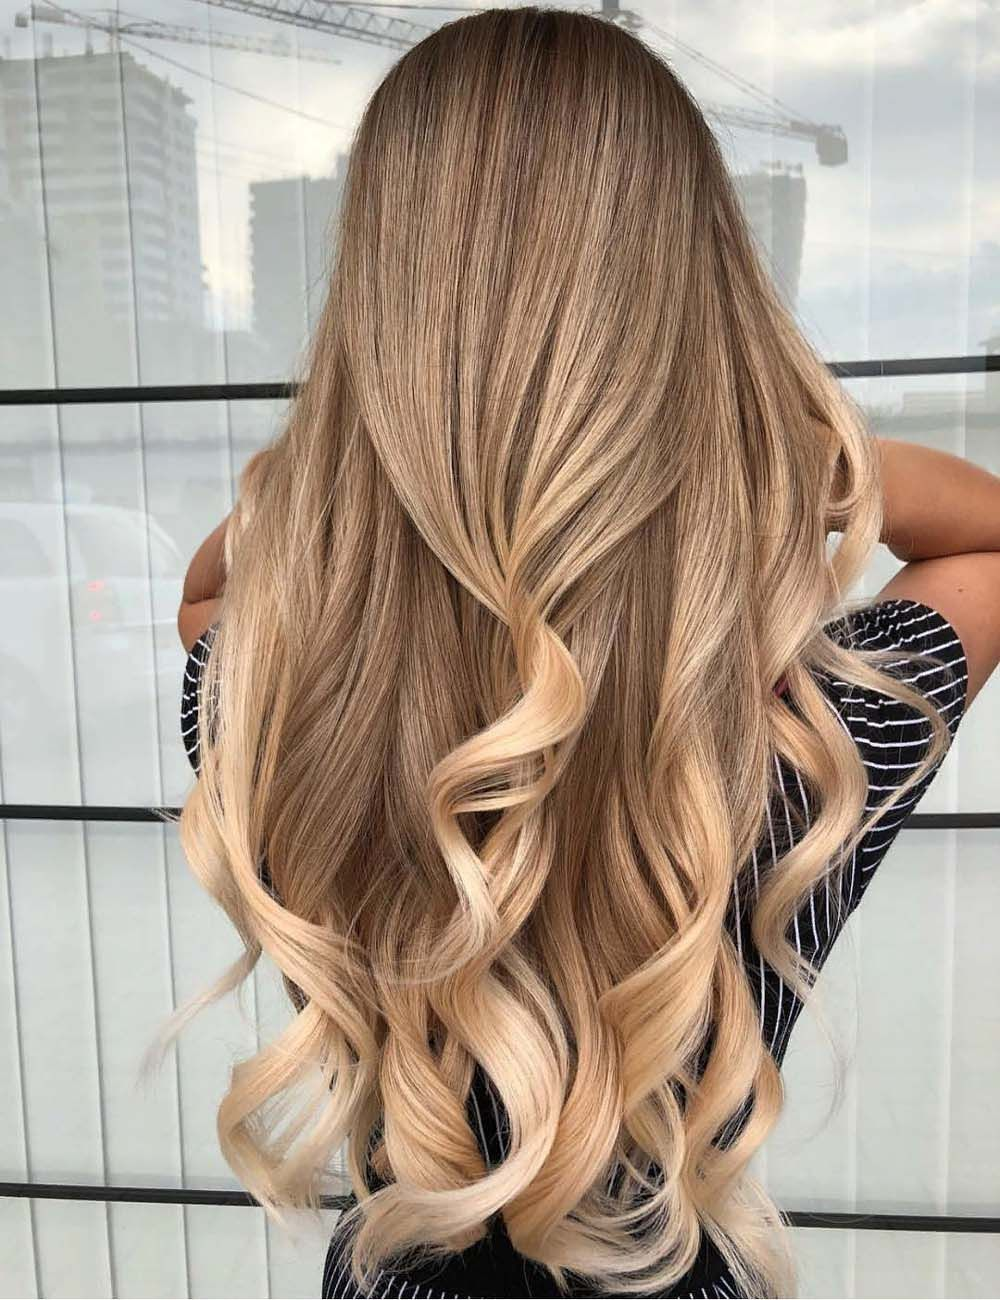 Pin On Trendy Colours For Hair